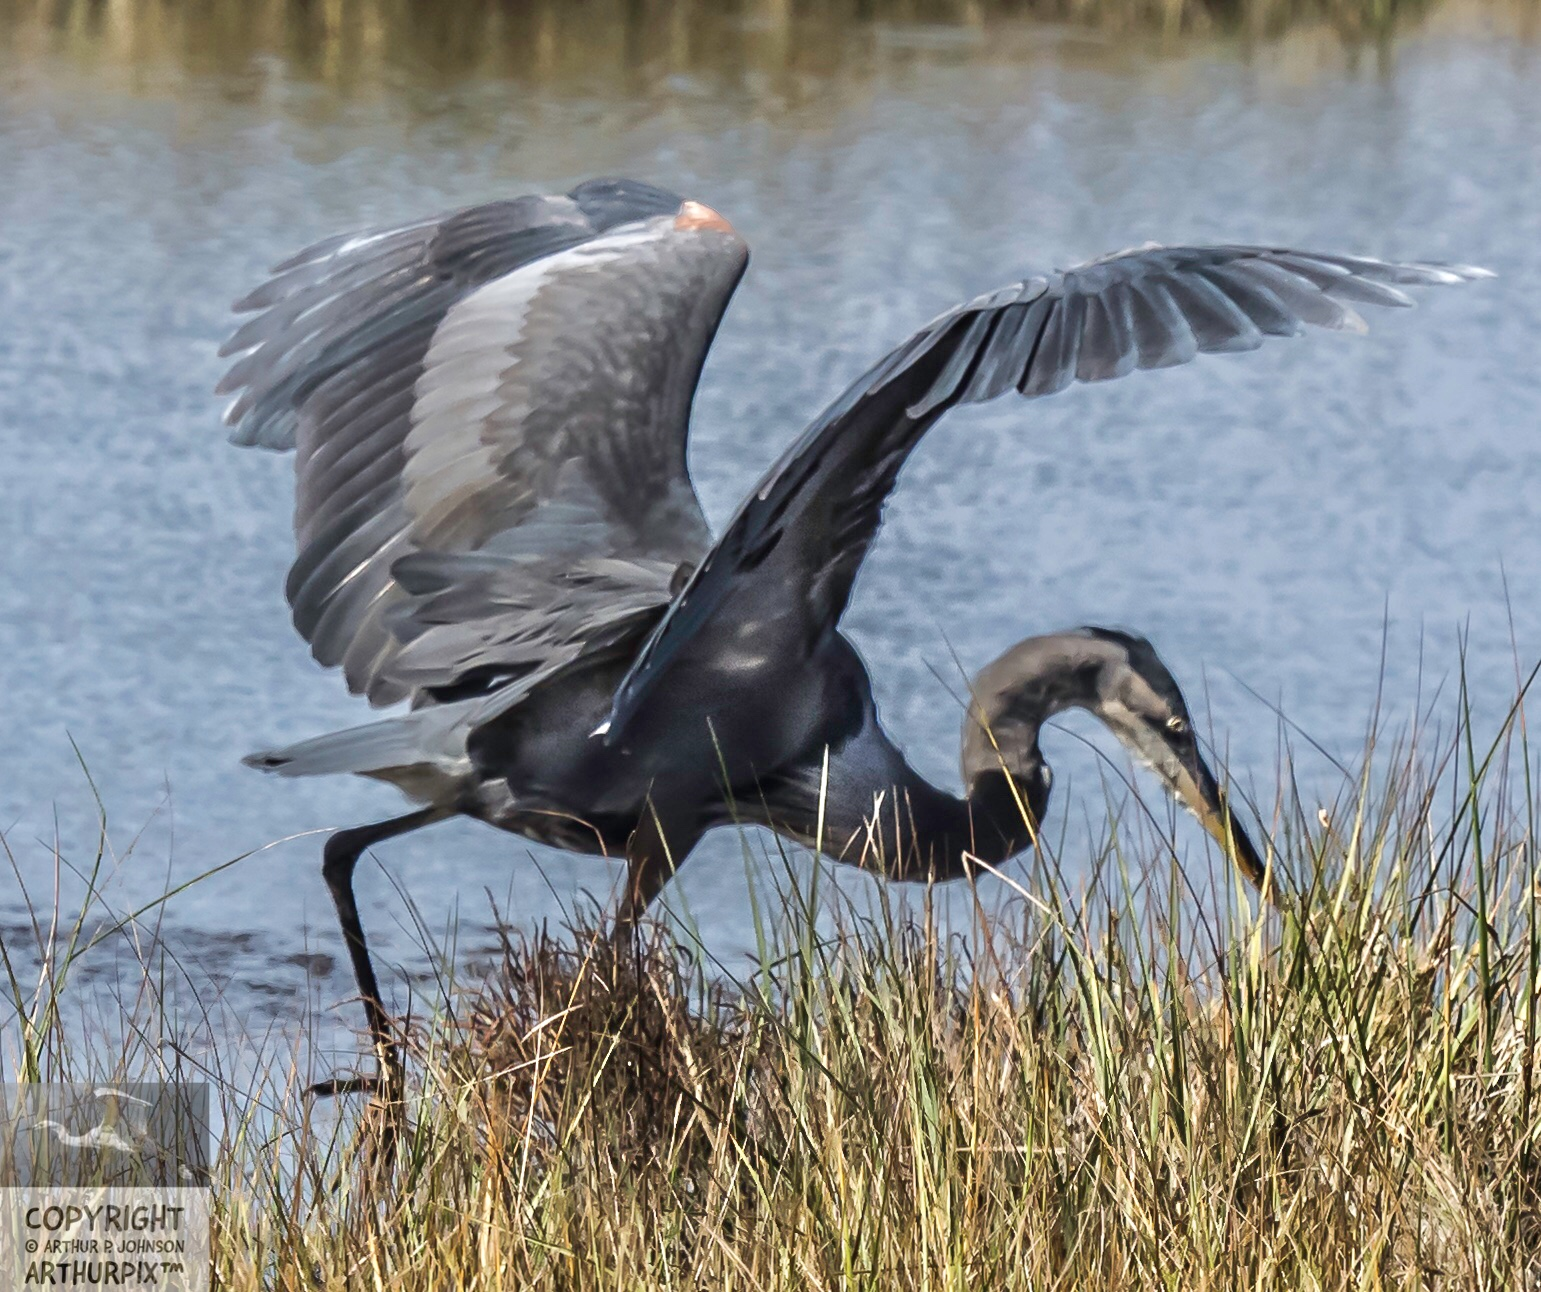 Little Blue Heron Feeding Upon Voles, Possibly